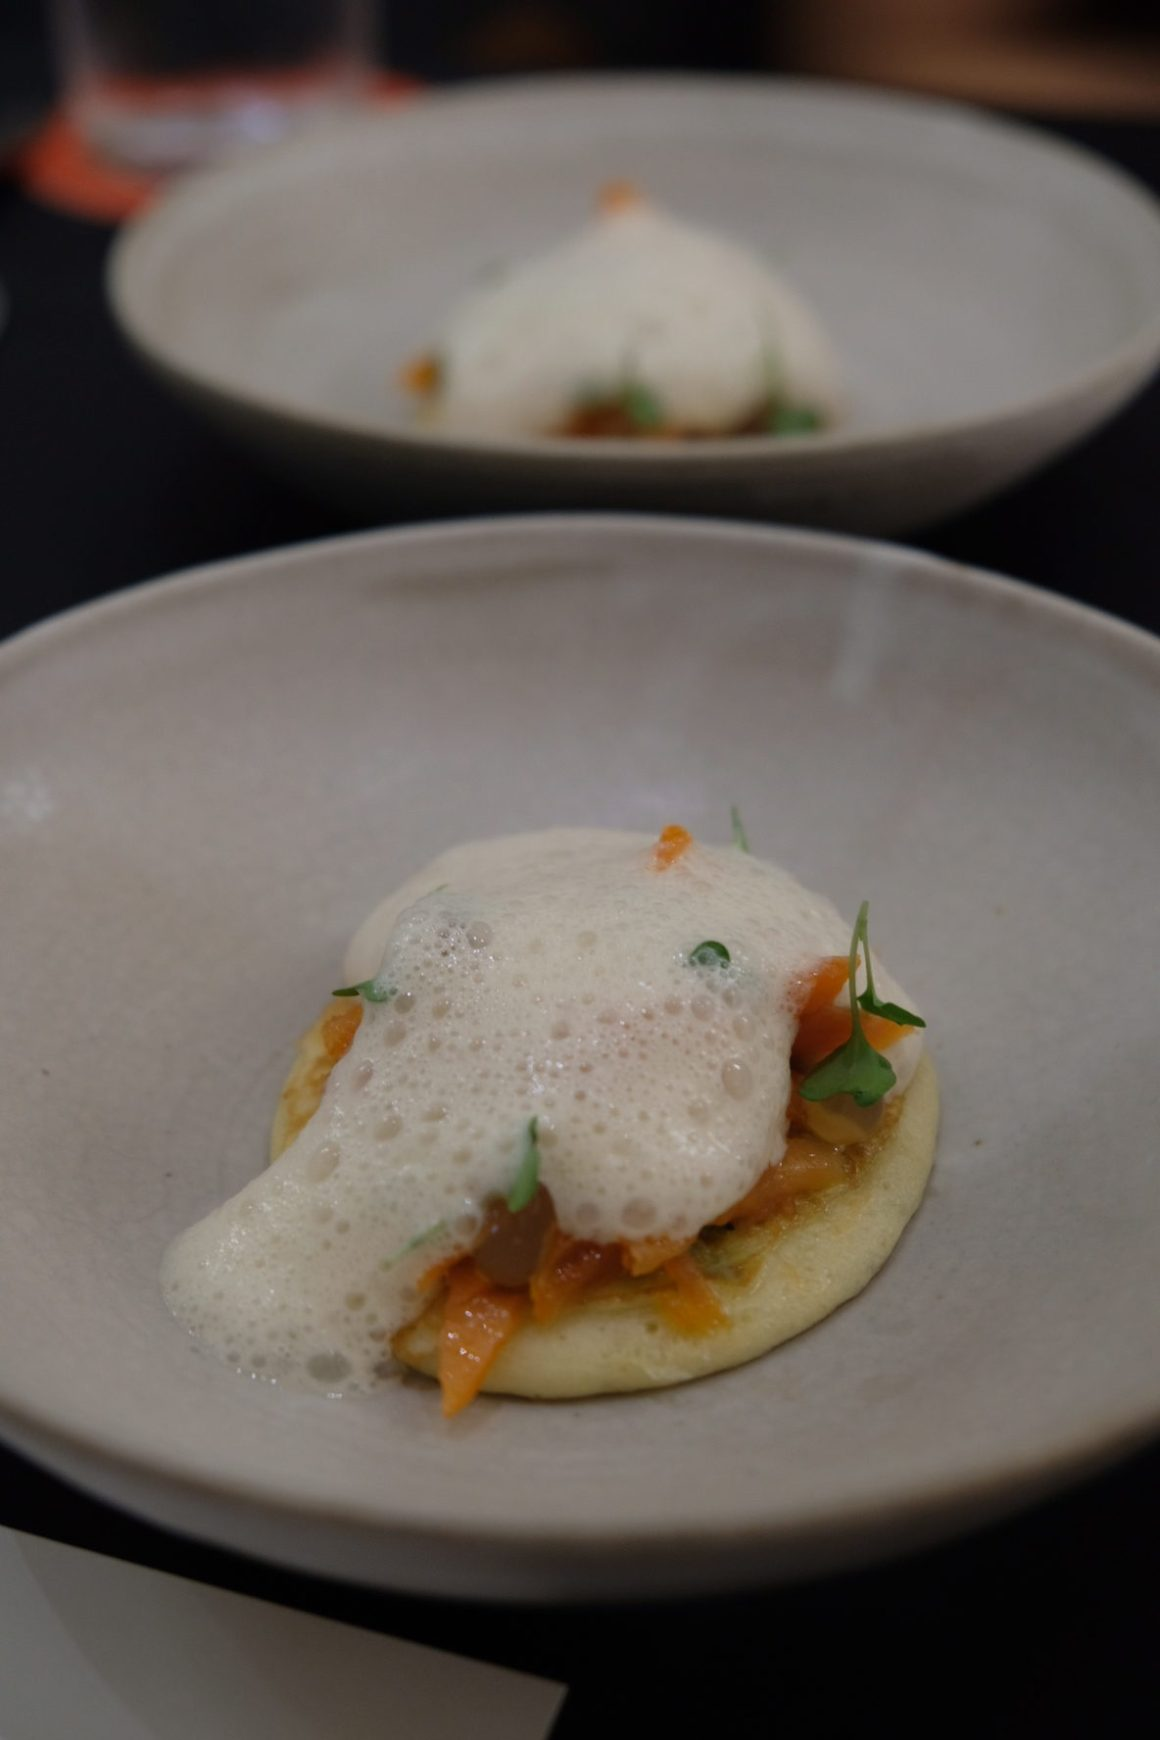 100 Gourment March 2019 Edition: Chef Aitor Jeronimo Orive x Visiting Chef Oldrich Sahajdak At Basque Kitchen By Aitor - Smoked Trout